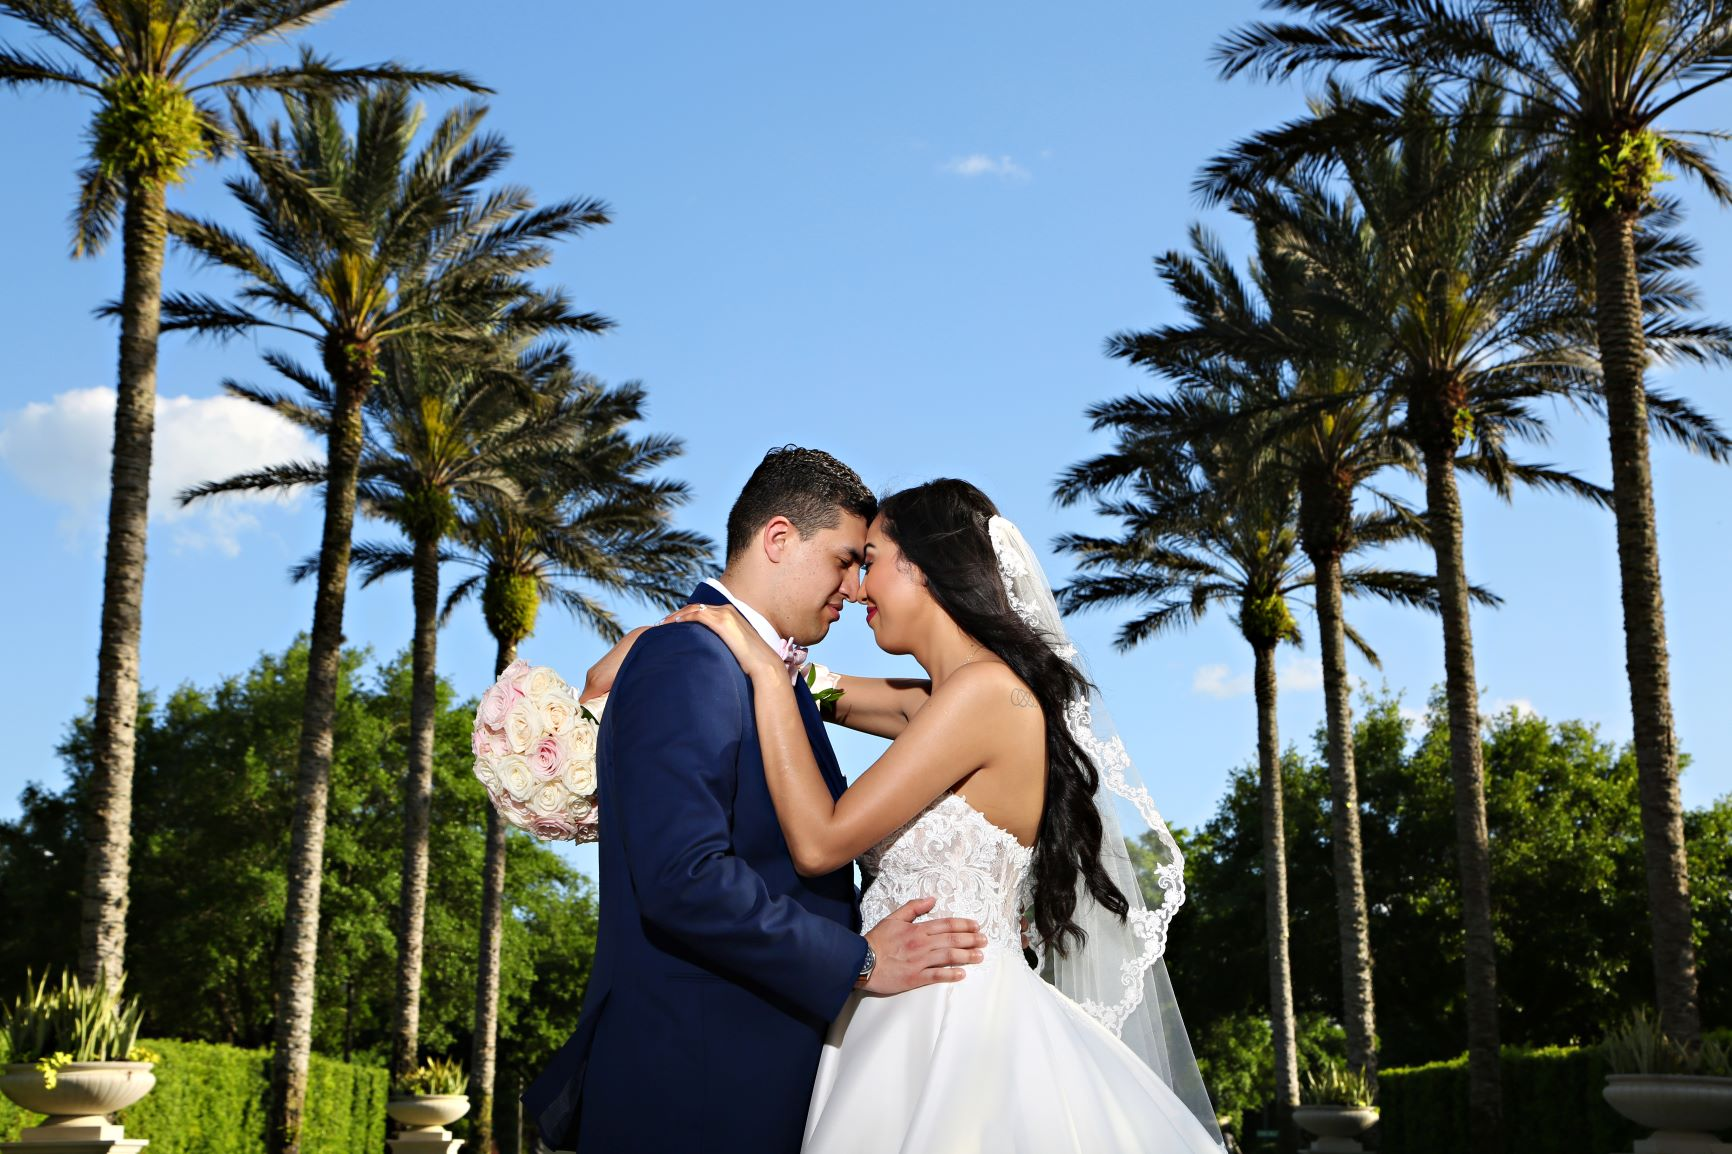 The Pros and Cons of All Inclusive Wedding Packages | Shopping